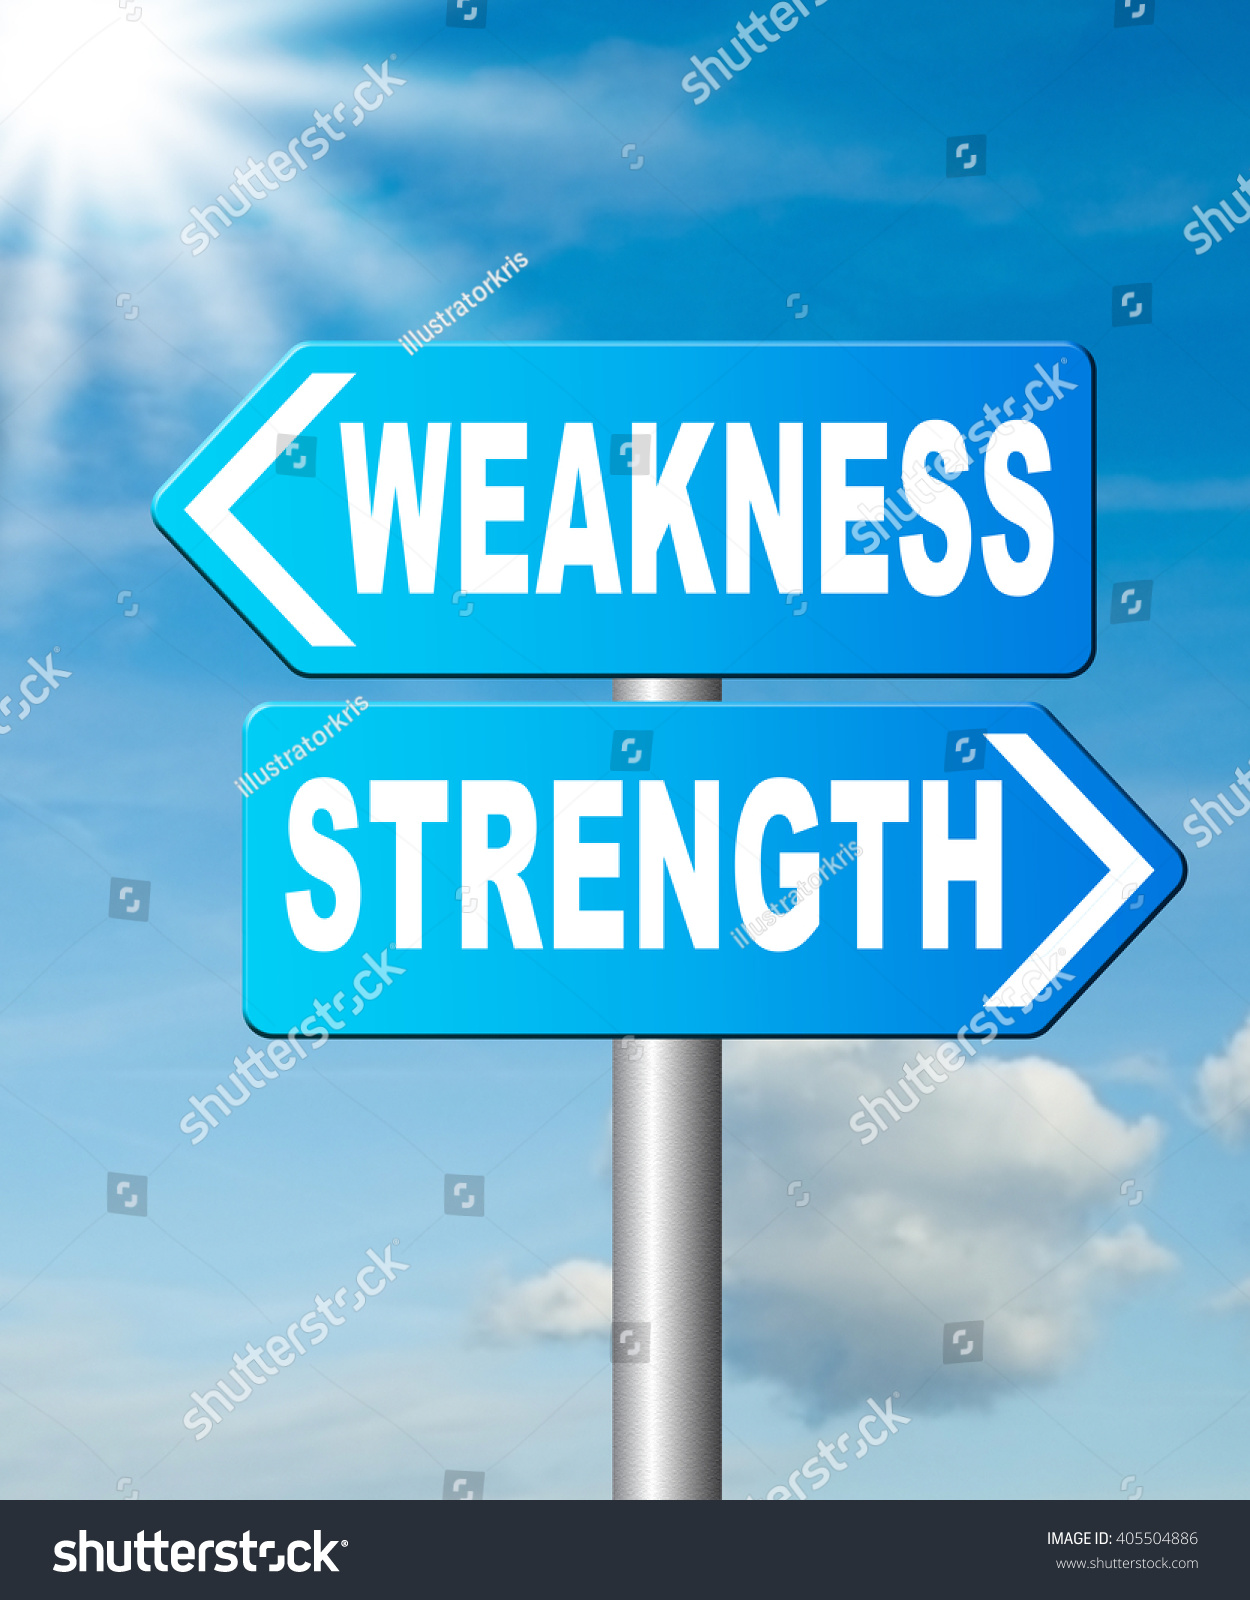 strength or weakness being strong or weak overcome problems accept save to a lightbox